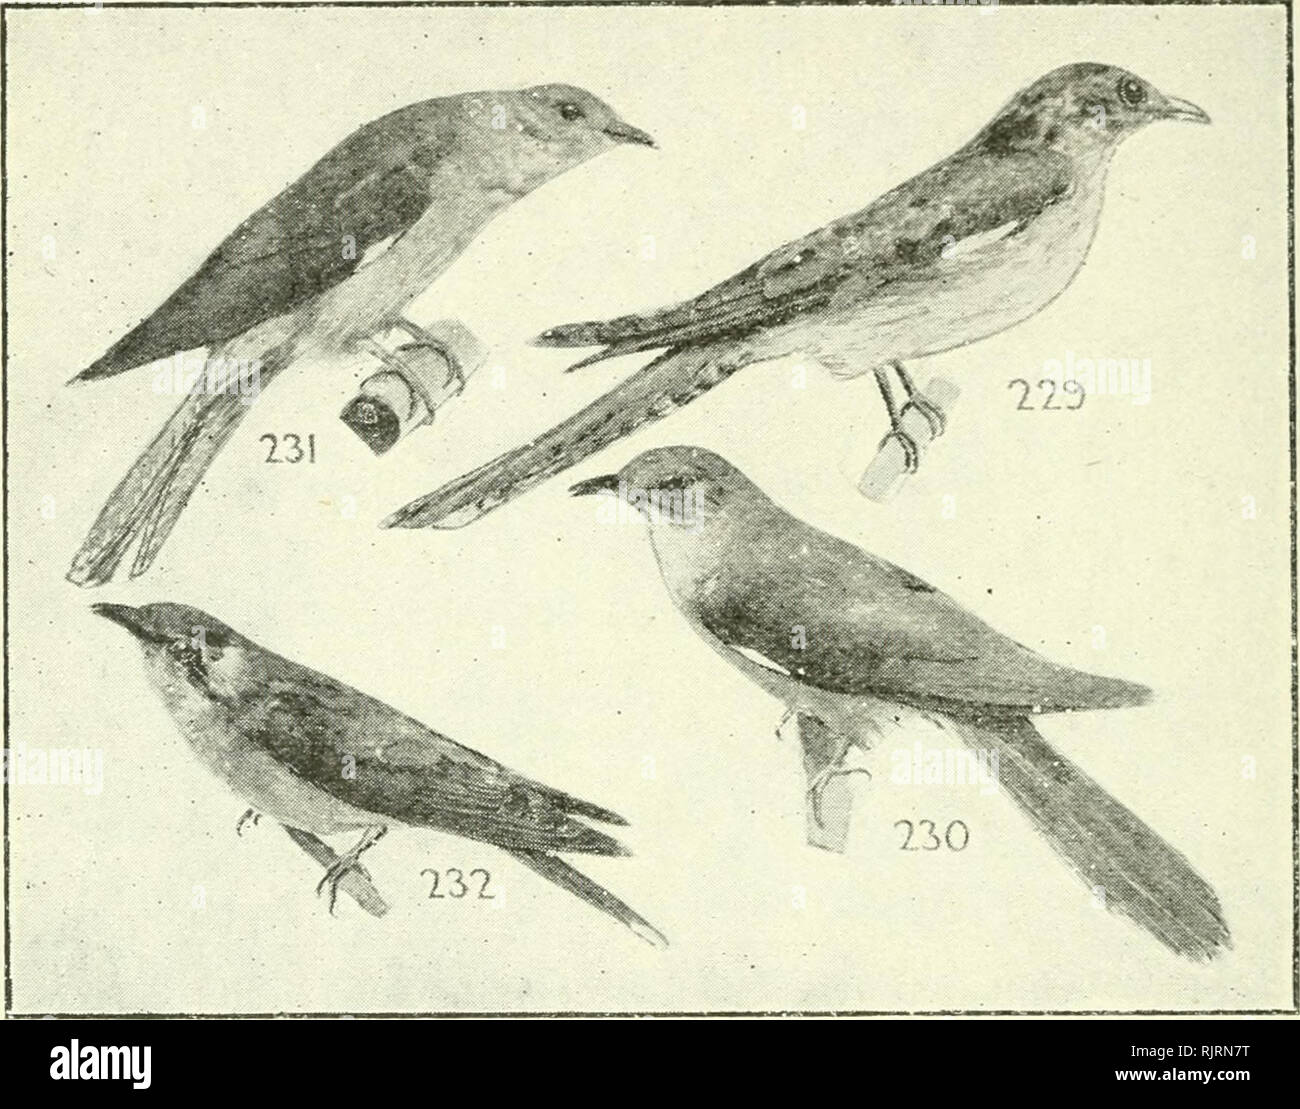 """. An Australian bird book : a pocket book for field use. Birds -- Australia Identification. 108 AN* AUSTRALIAN BIRD BOOK.. F. 92. Trochilidae, Humming-Birds, 581 sp —18 (5) Nc, 576(563)N1. F. 93. Coliidae, Mouse-Birds, 14 sp. E. F. di.Trogonidac, Trogons, 54 sp.—16(16)0., 4(4)E., l(0)Nc, 34(33)N1. ORDER XIX.—COCCYGES. F. 95. Musophagidae, Plantain-eaters, Touracos, 35 sp. E. F. 96. CUCULIDAE (14), CUCKOOS (Cuckows), 202 sp.— 61(50)A., 57(42)0., 8(0)P., 55(51)E., 8(0)Nc., 43(35)N1. Hawks,"""" and are shot by people who foolishly shoot hawks. Many destructive insects fly only at night, and the - Stock Image"""